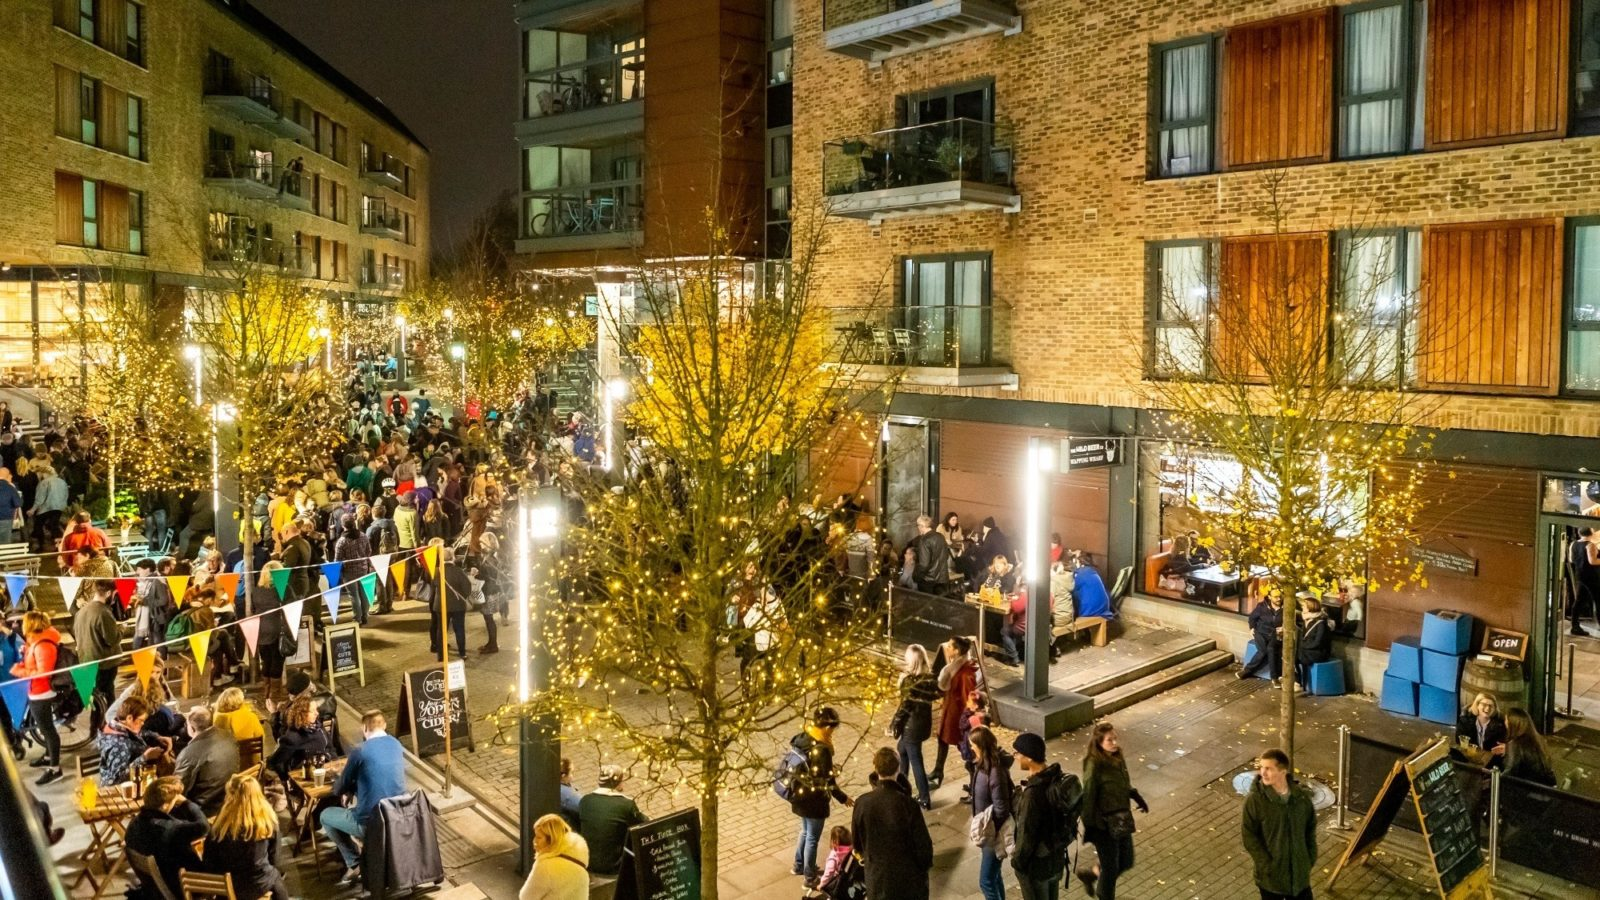 A Wapping Wharf Christmas With A Fairytale Twist Whats On